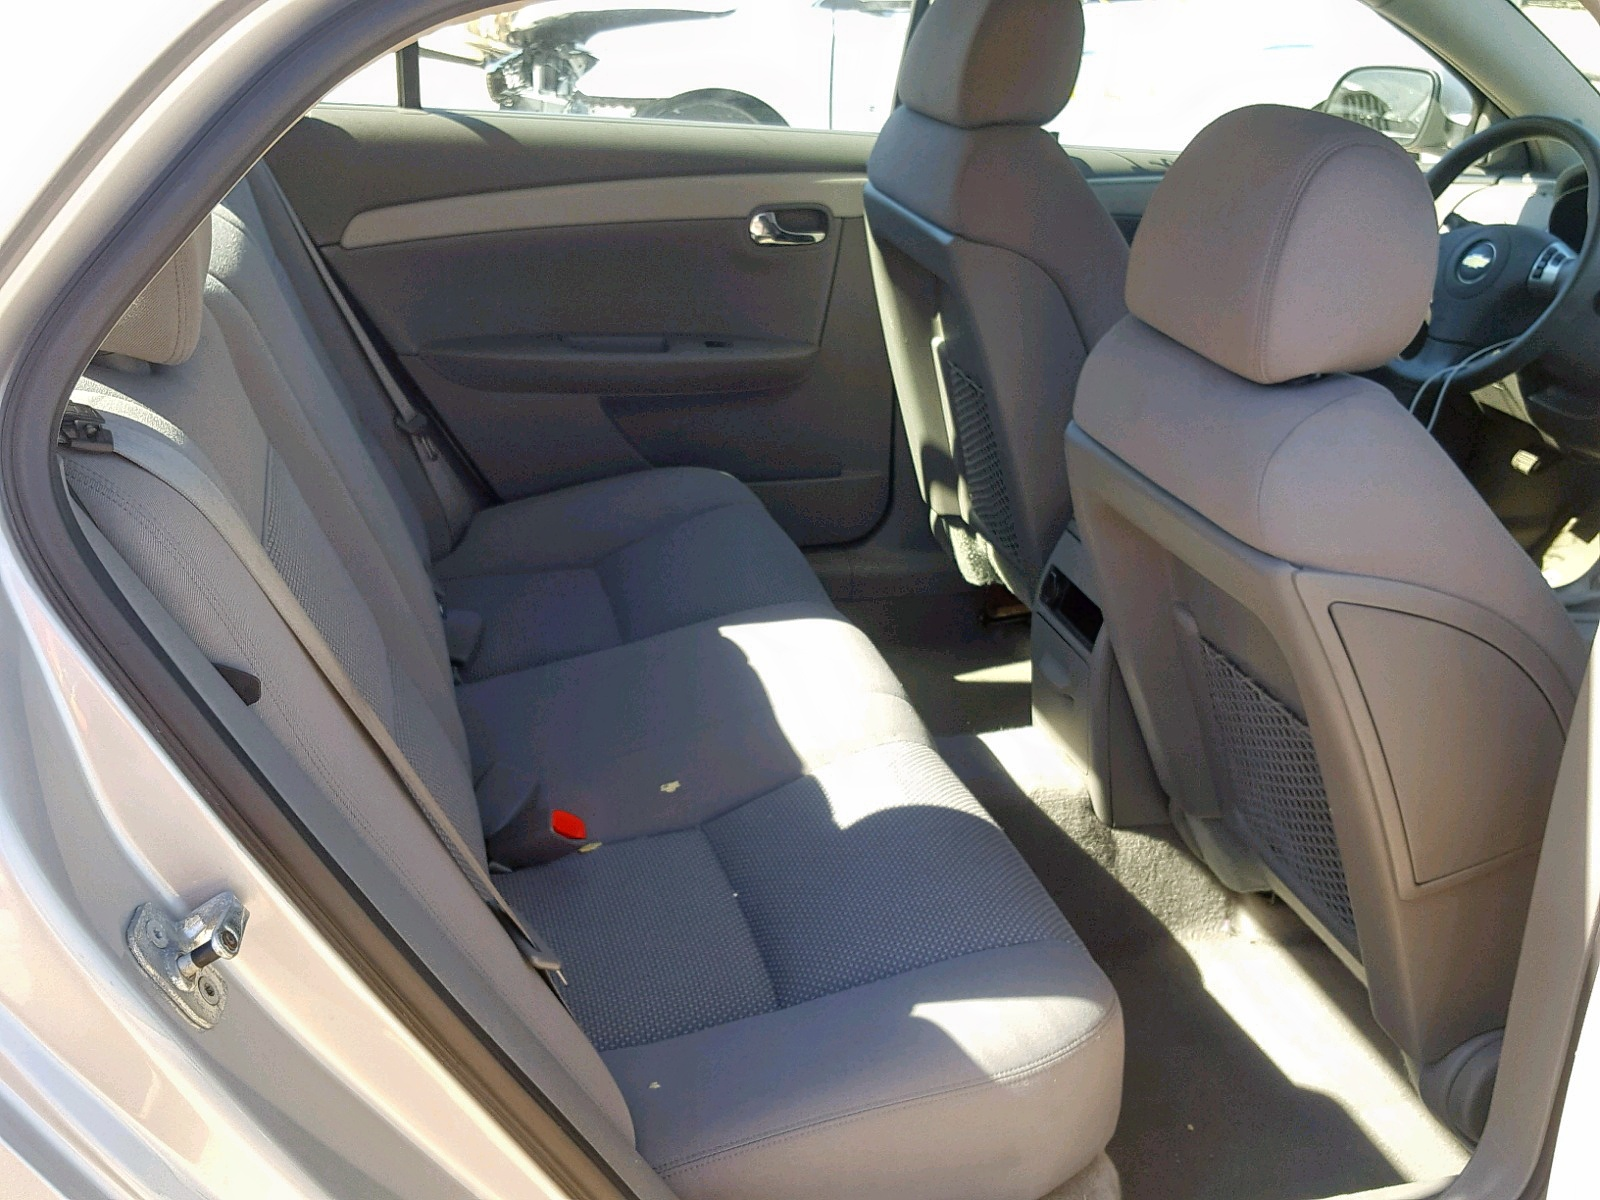 Peachy 2008 Chevrolet Malibu Hyb 2 4L 4 In Ma South Boston Unemploymentrelief Wooden Chair Designs For Living Room Unemploymentrelieforg